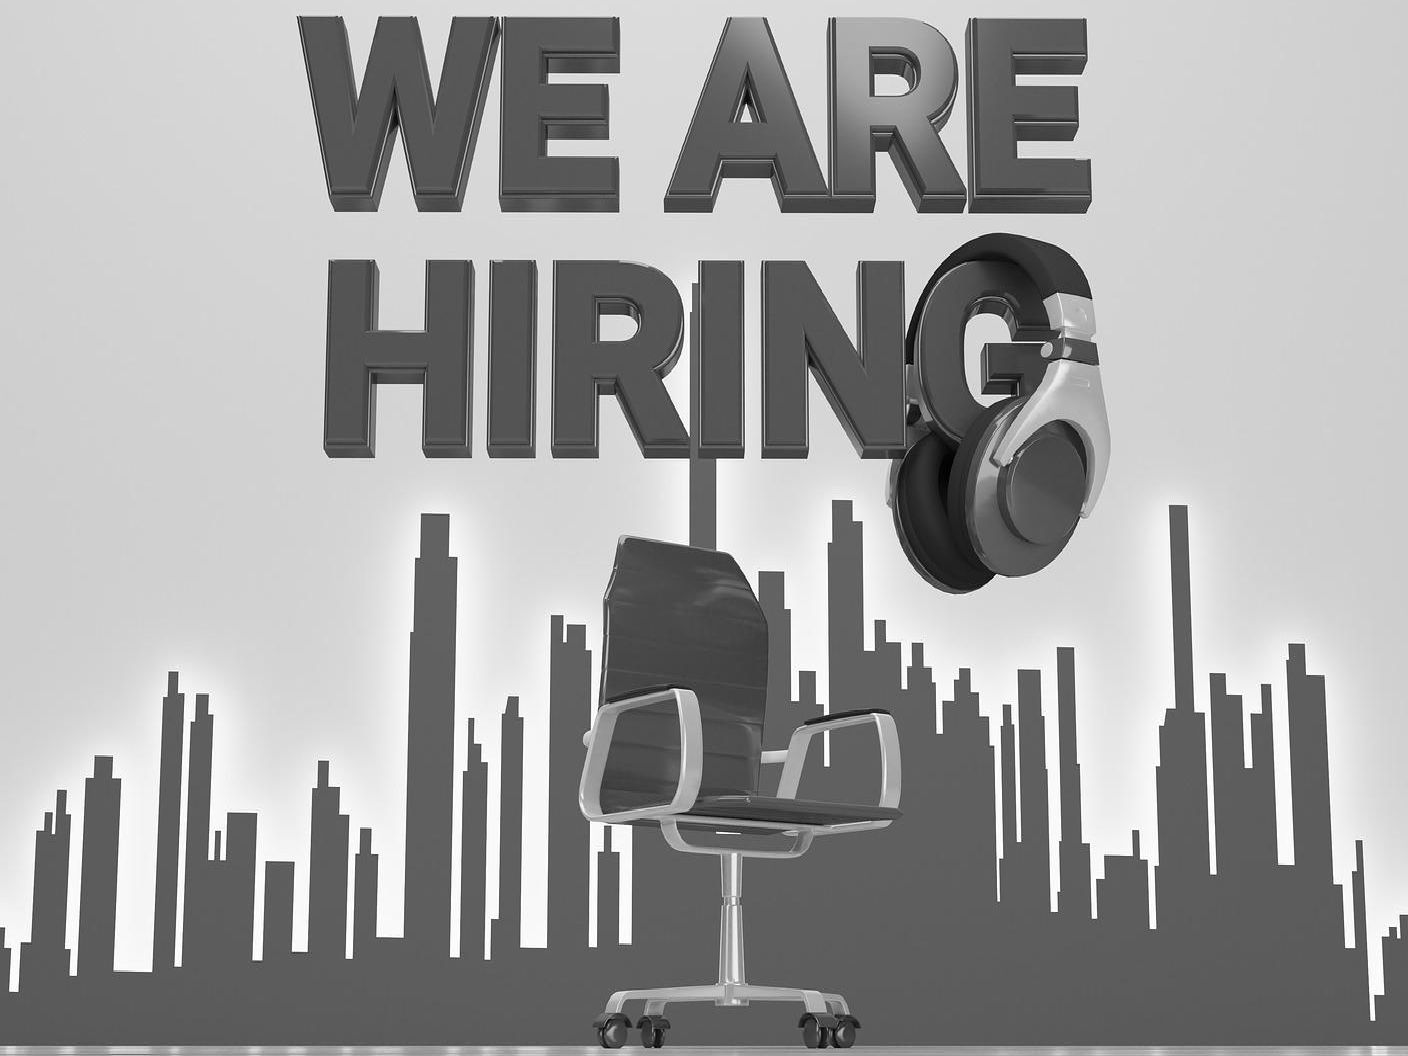 Firms are hiring now